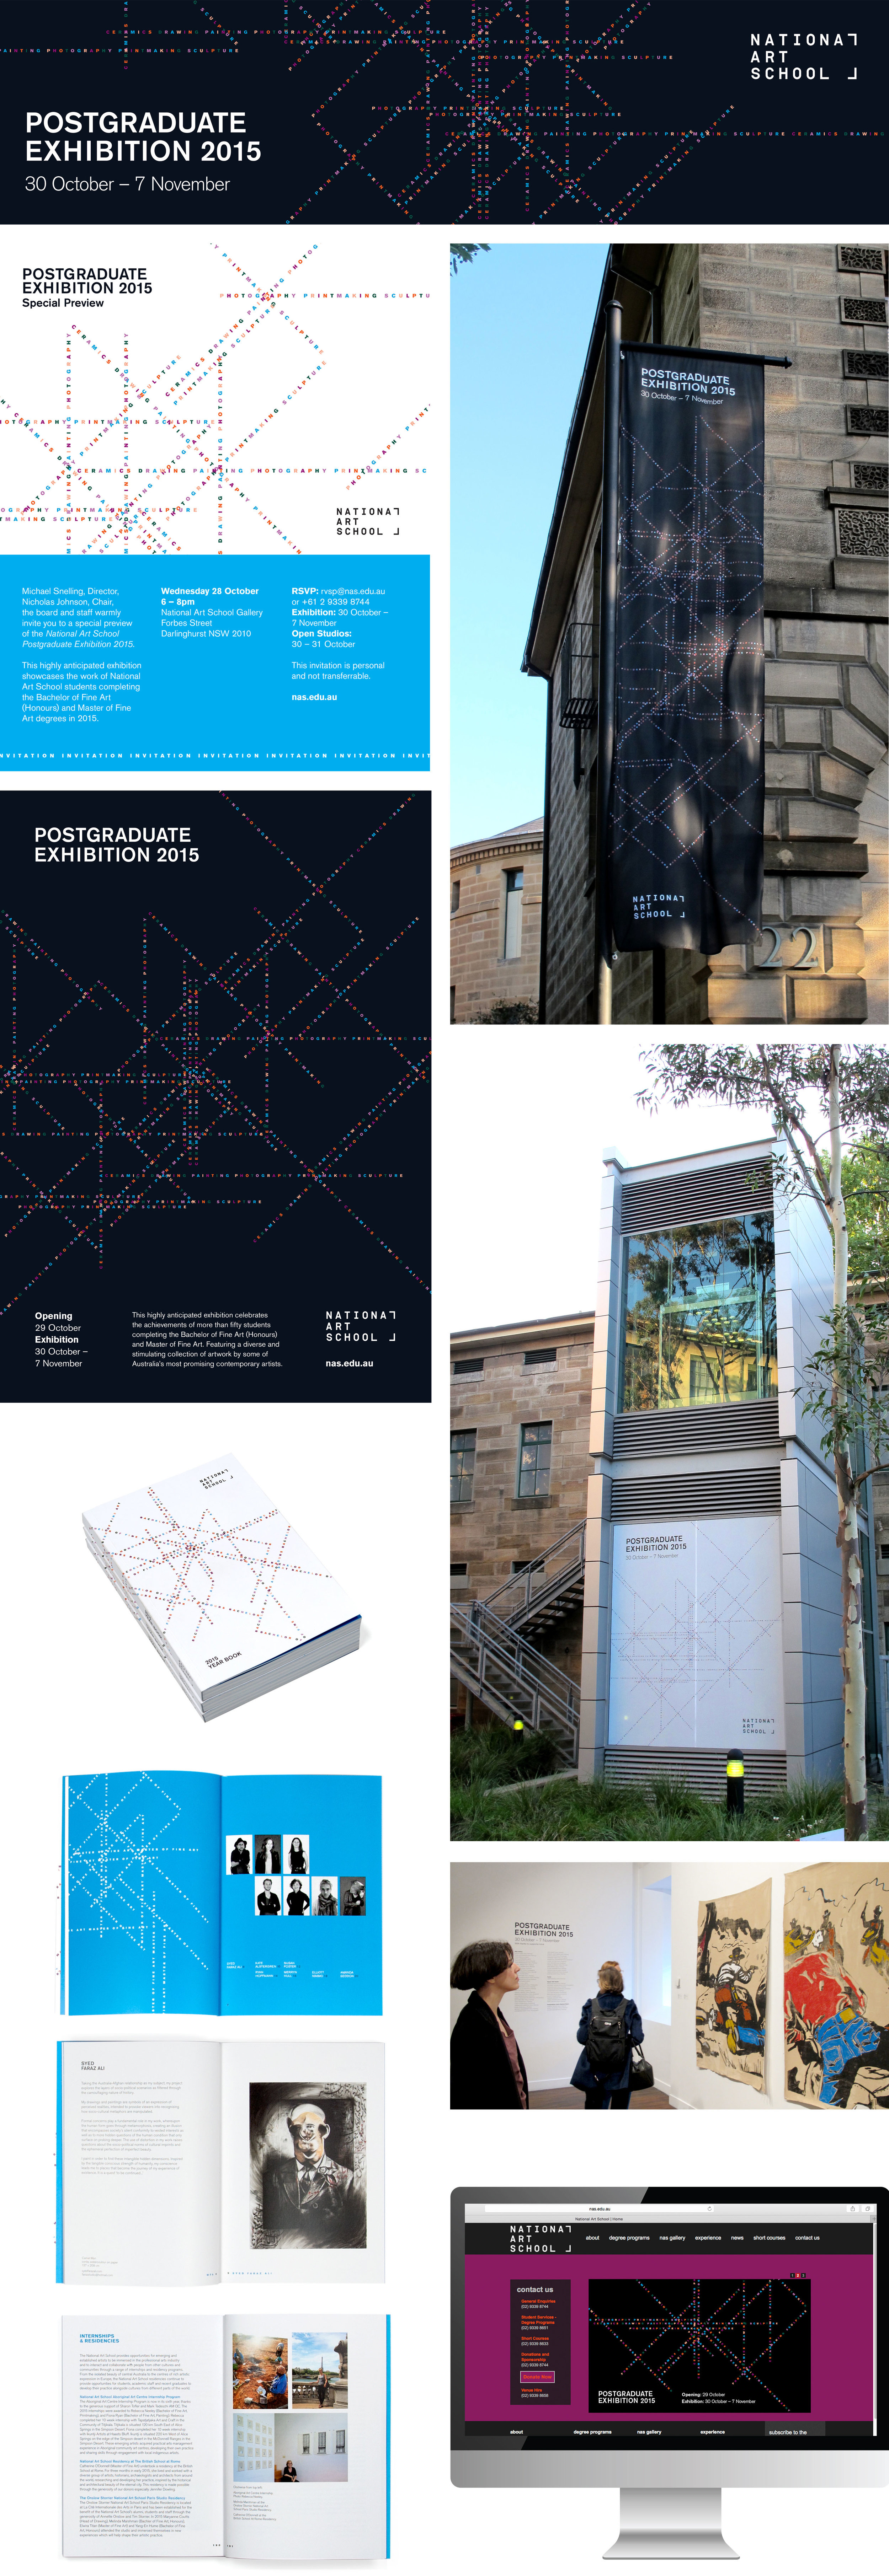 client  National Art School  Project  Postgraduate Exhibition 2015 | e-invitations, outdoor signage, end of year book, gallery signage, digitals ads & banners